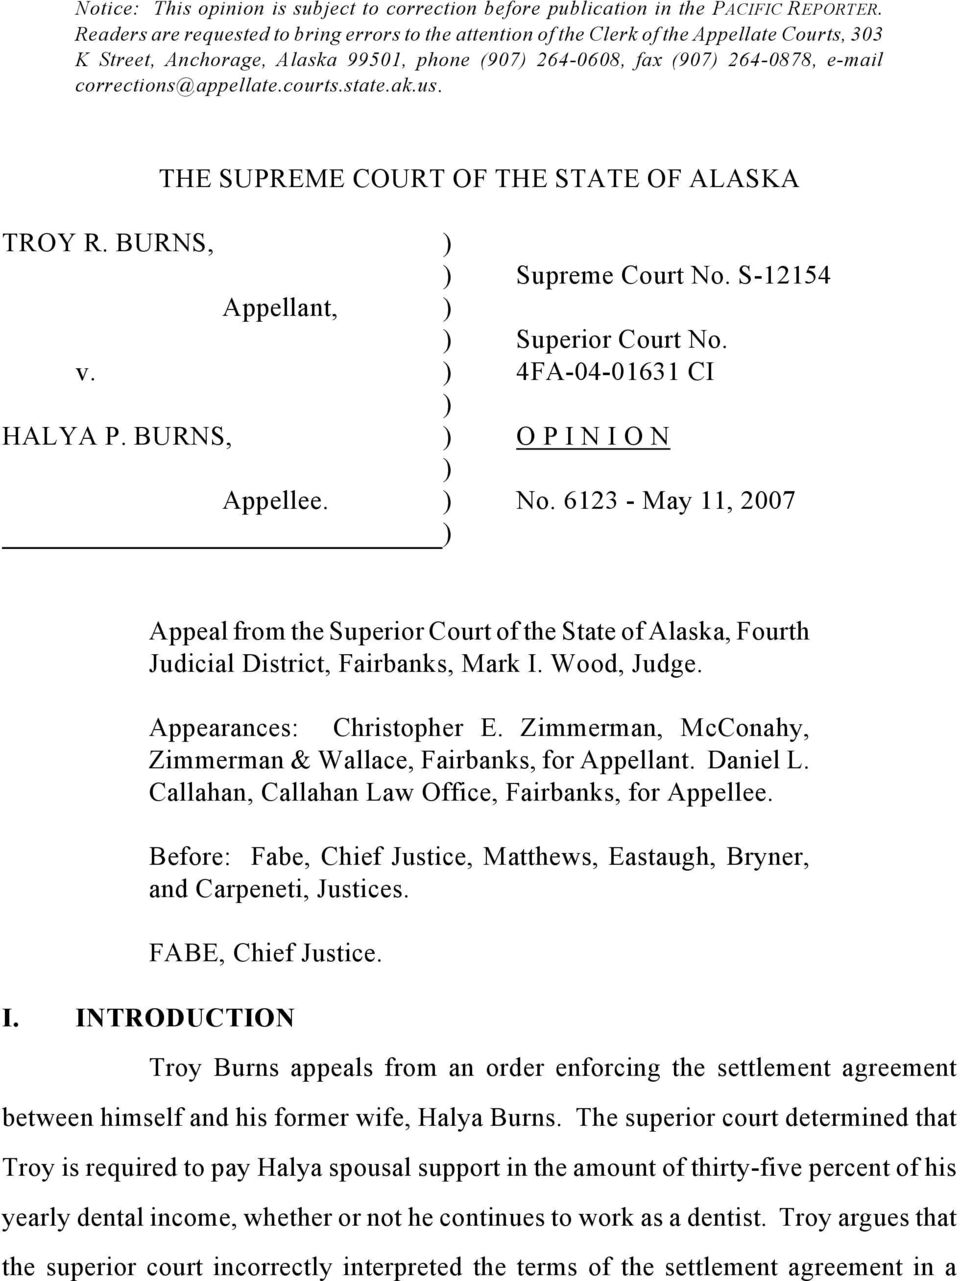 corrections@appellate.courts.state.ak.us. THE SUPREME COURT OF THE STATE OF ALASKA TROY R. BURNS, ) ) Supreme Court No. S-12154 Appellant, ) ) Superior Court No. v. ) 4FA-04-01631 CI ) HALYA P.